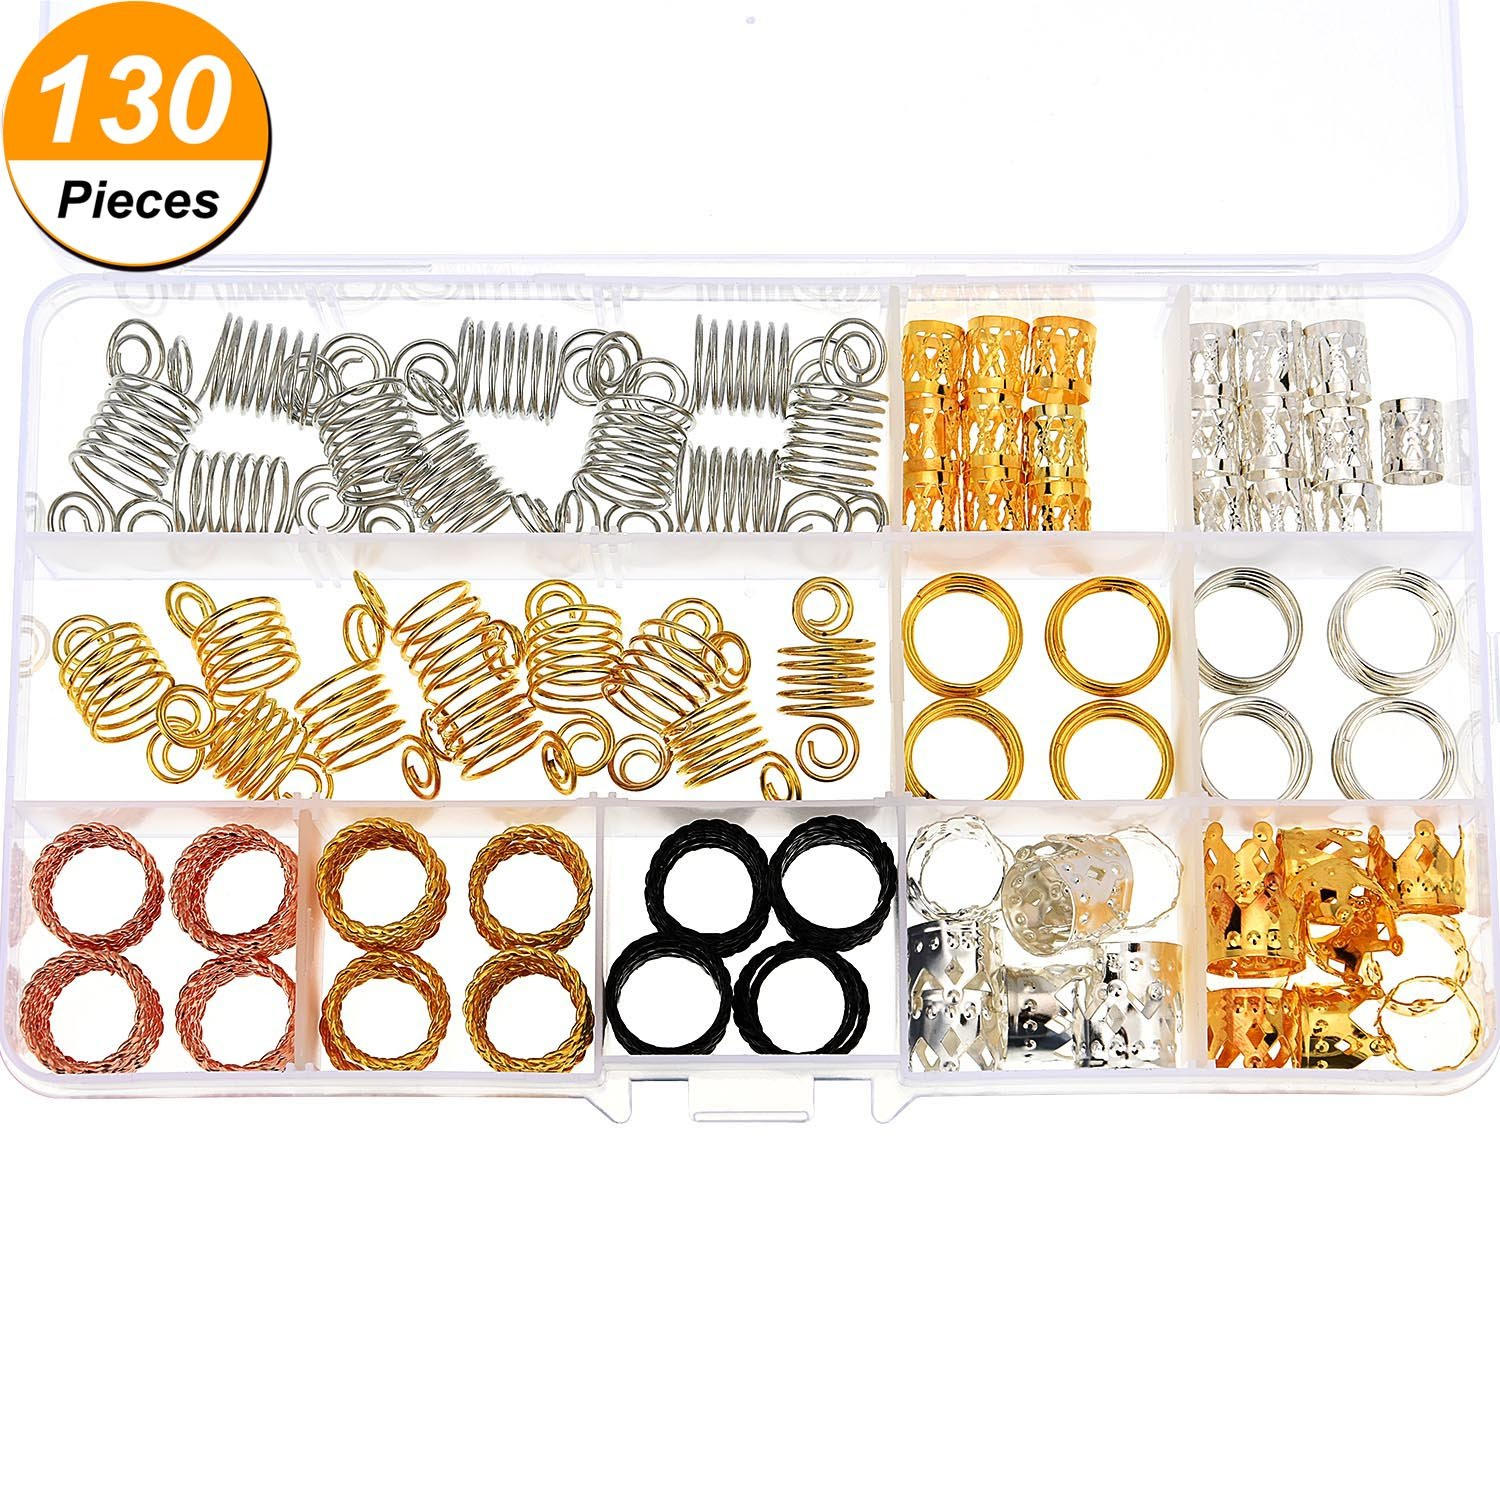 Jetec 130 Pieces Metal Hair Cuffs Hair Braiding Beads Aluminum Dreadlocks Hair Decoration Accessories with Storage Box by Jetec